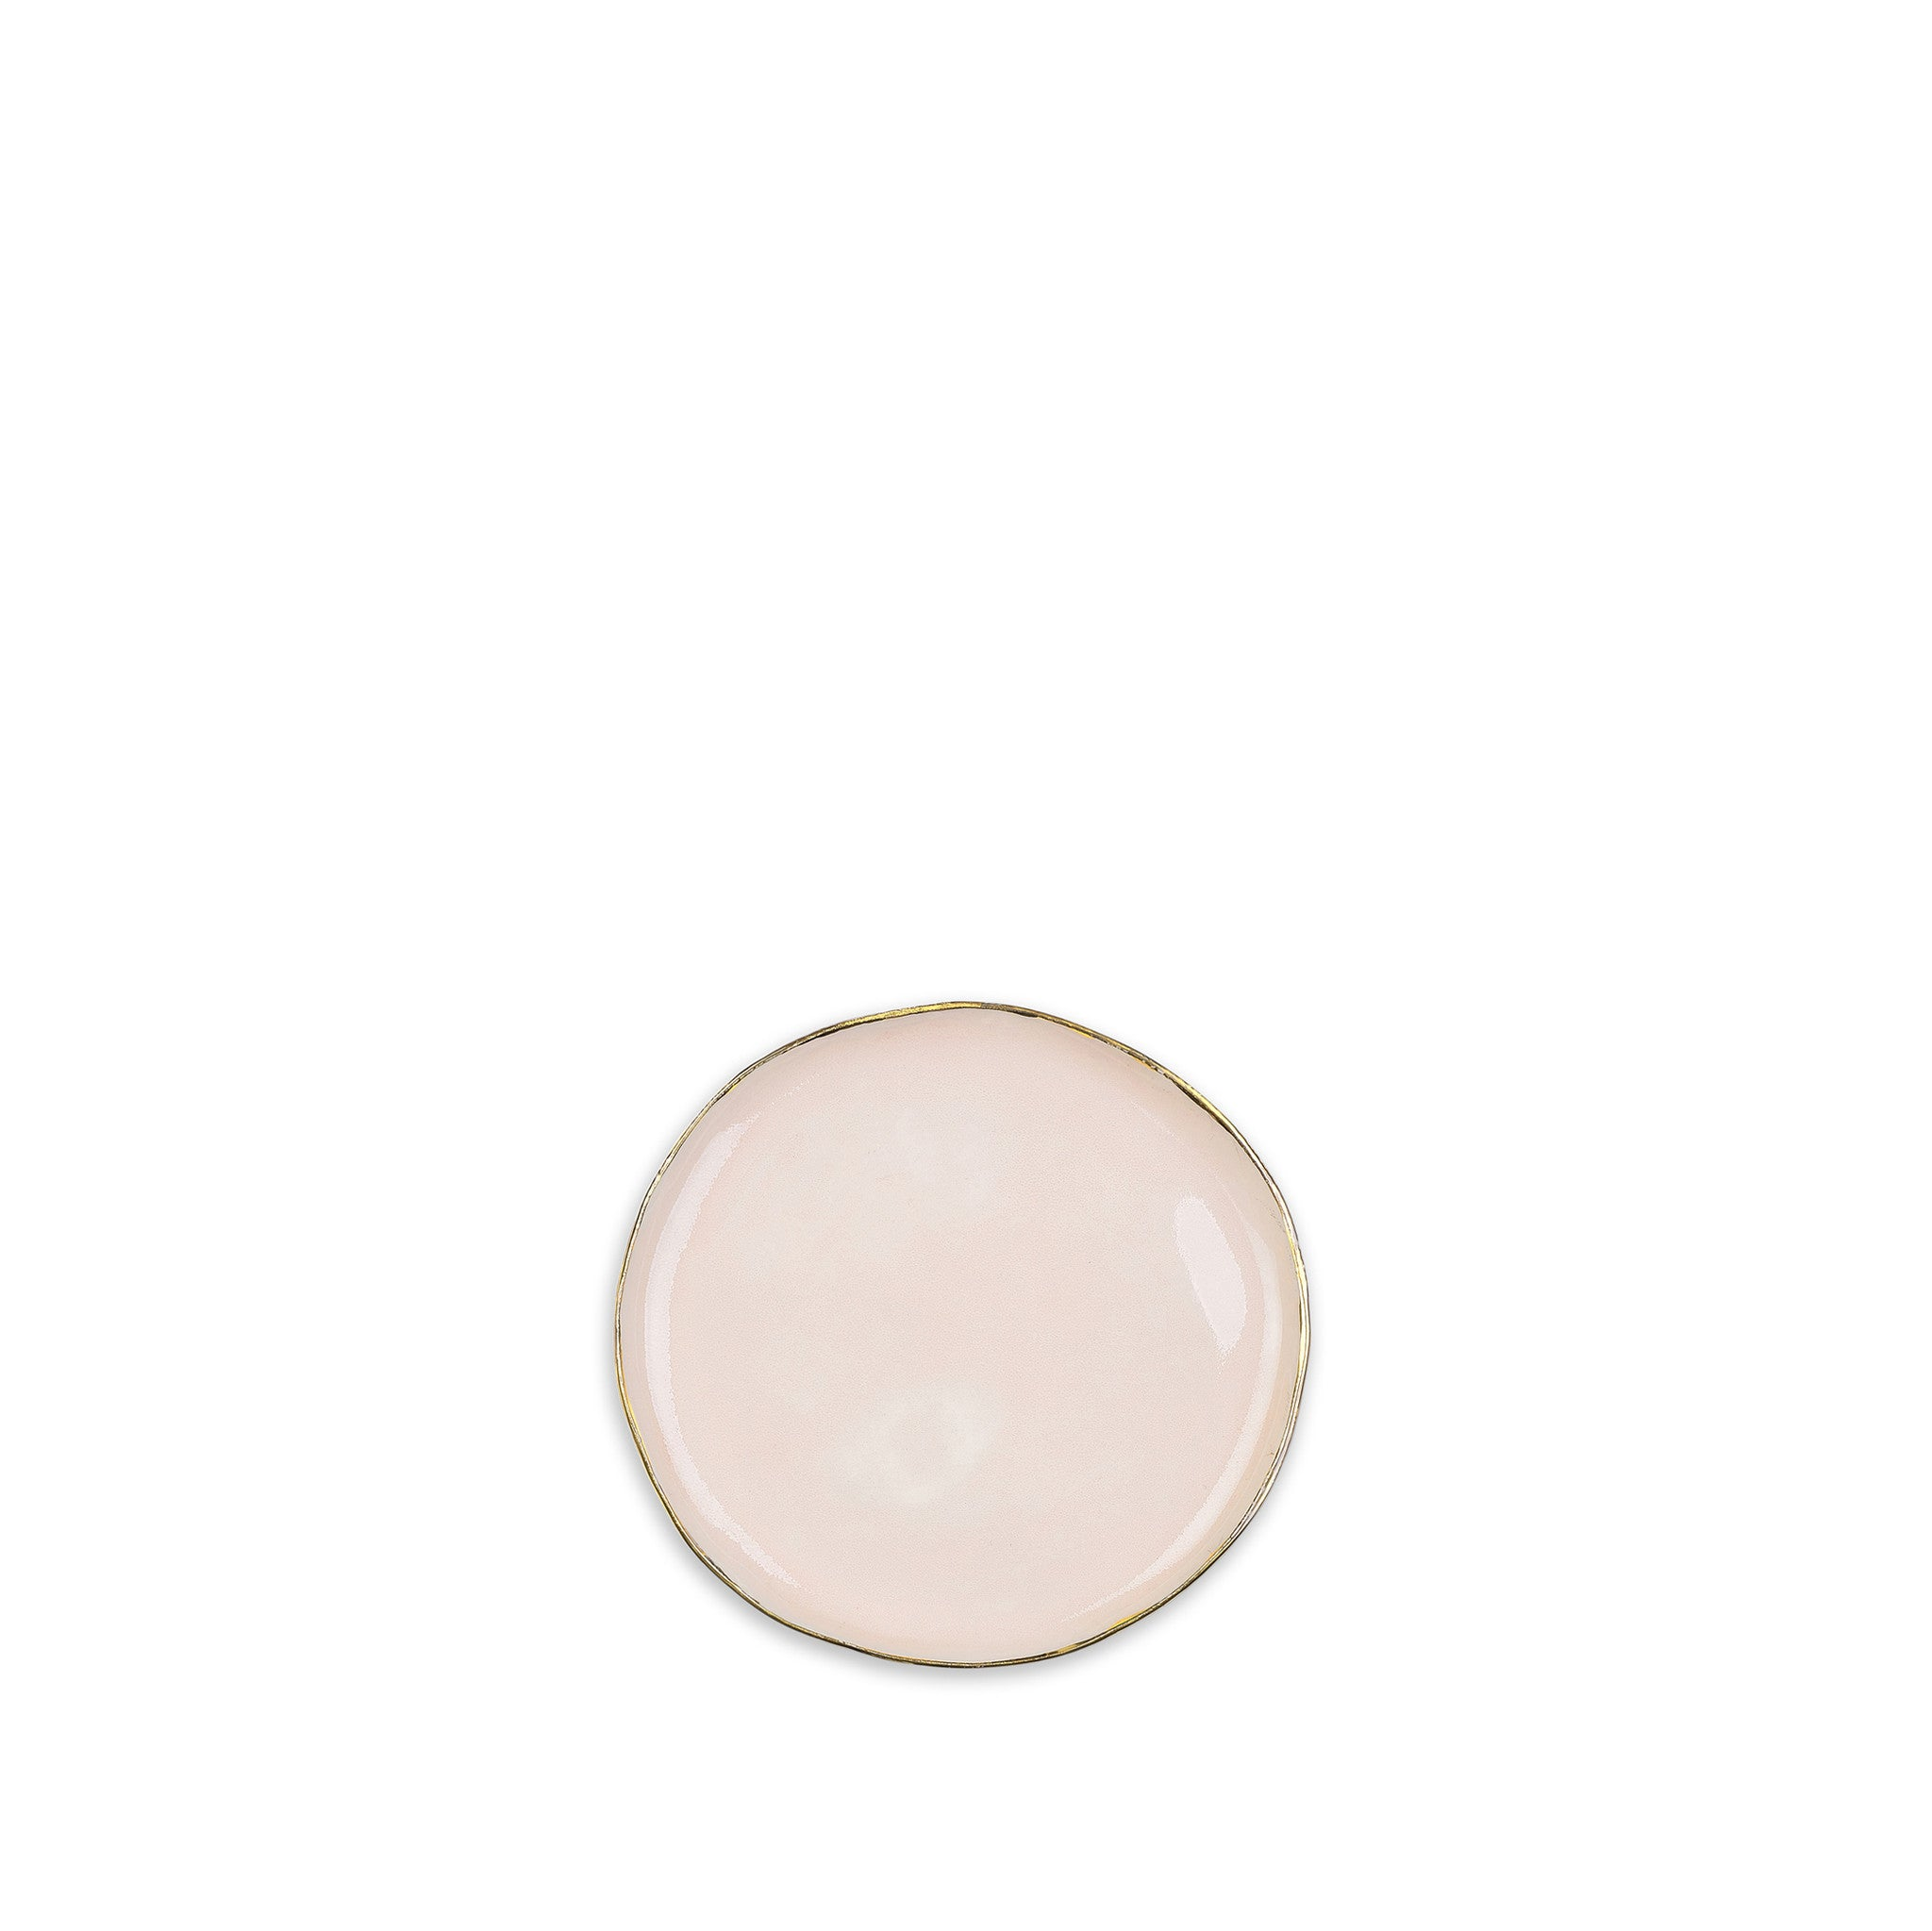 Small Pink Ceramic Plate with Gold Rim, 12cm